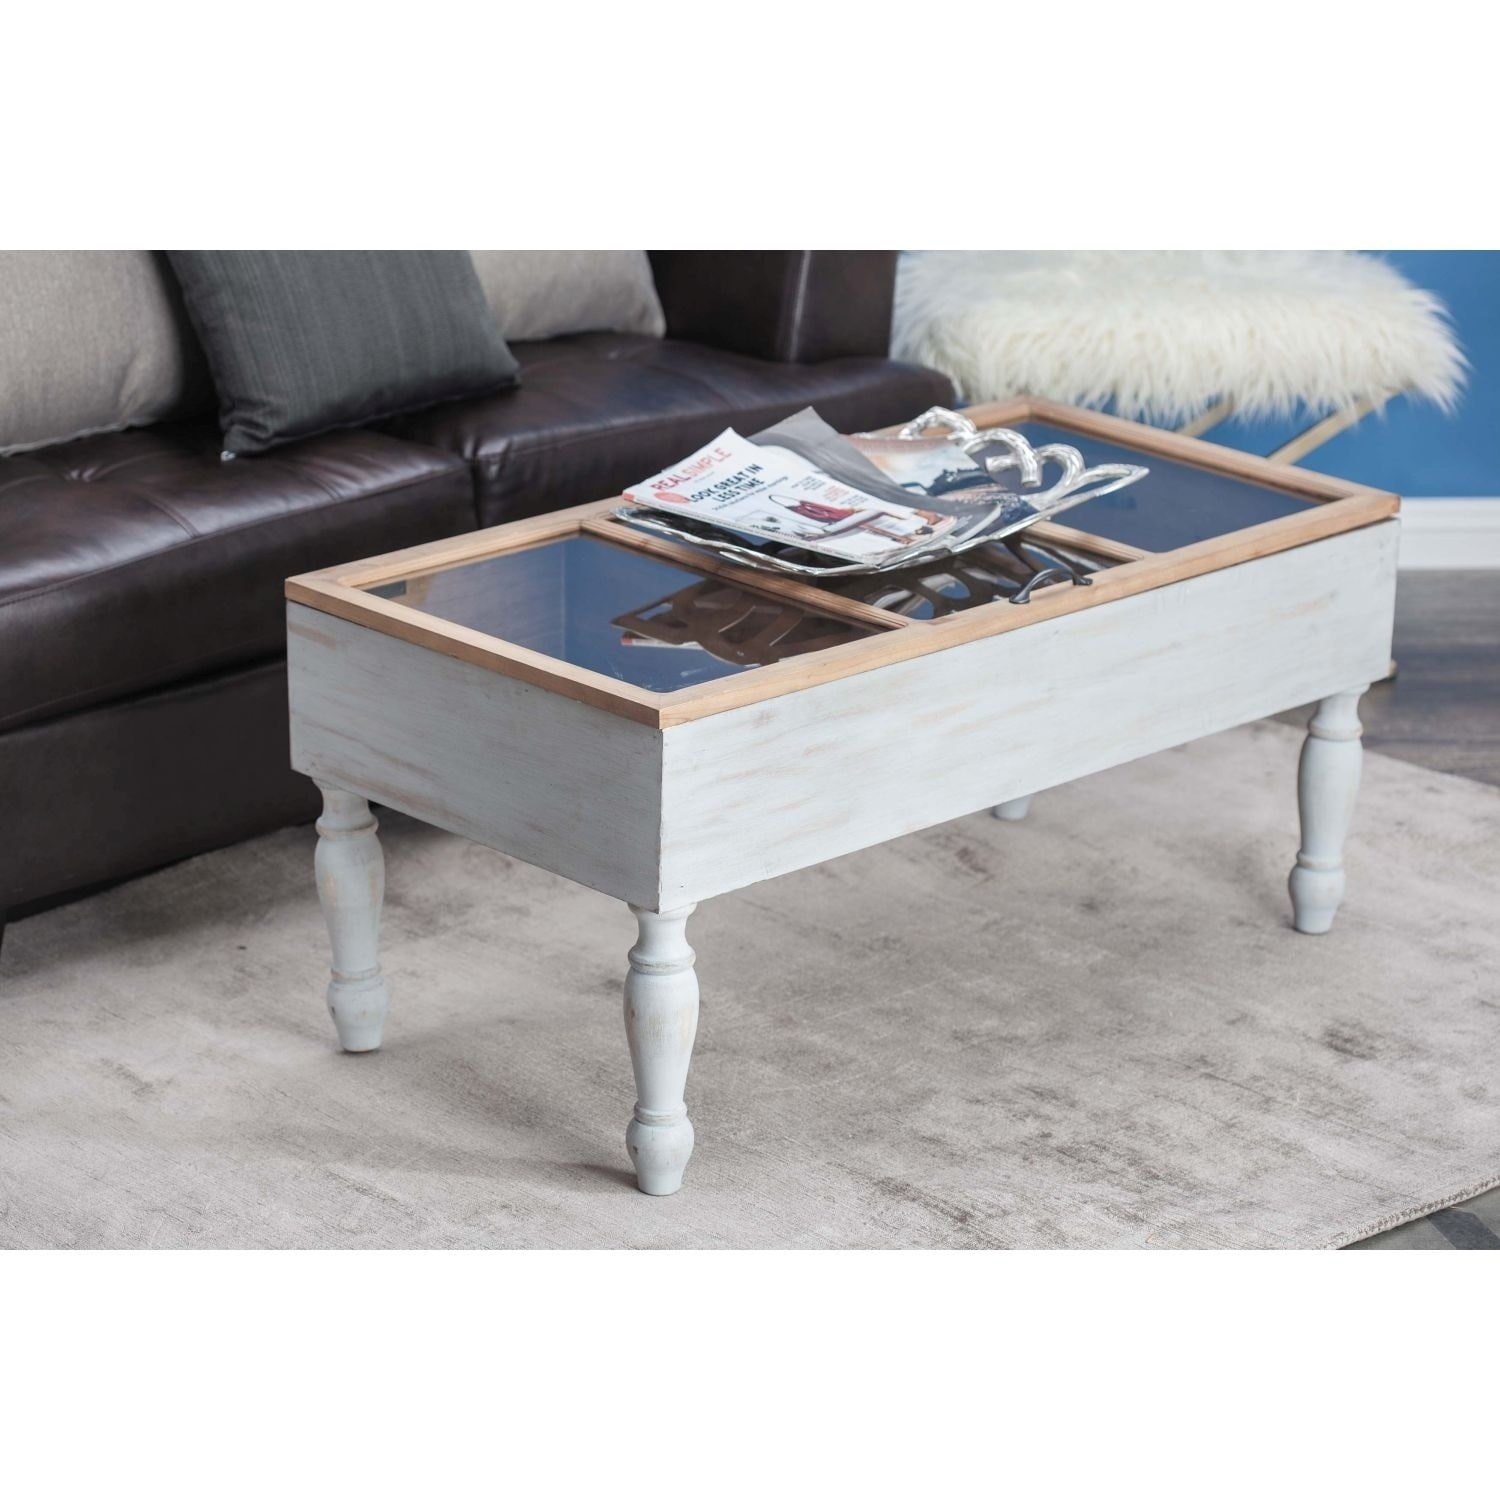 Studio 350 Wood Gl Coffee Table 43 Inches Wide 20 High Free Shipping Today 23495273